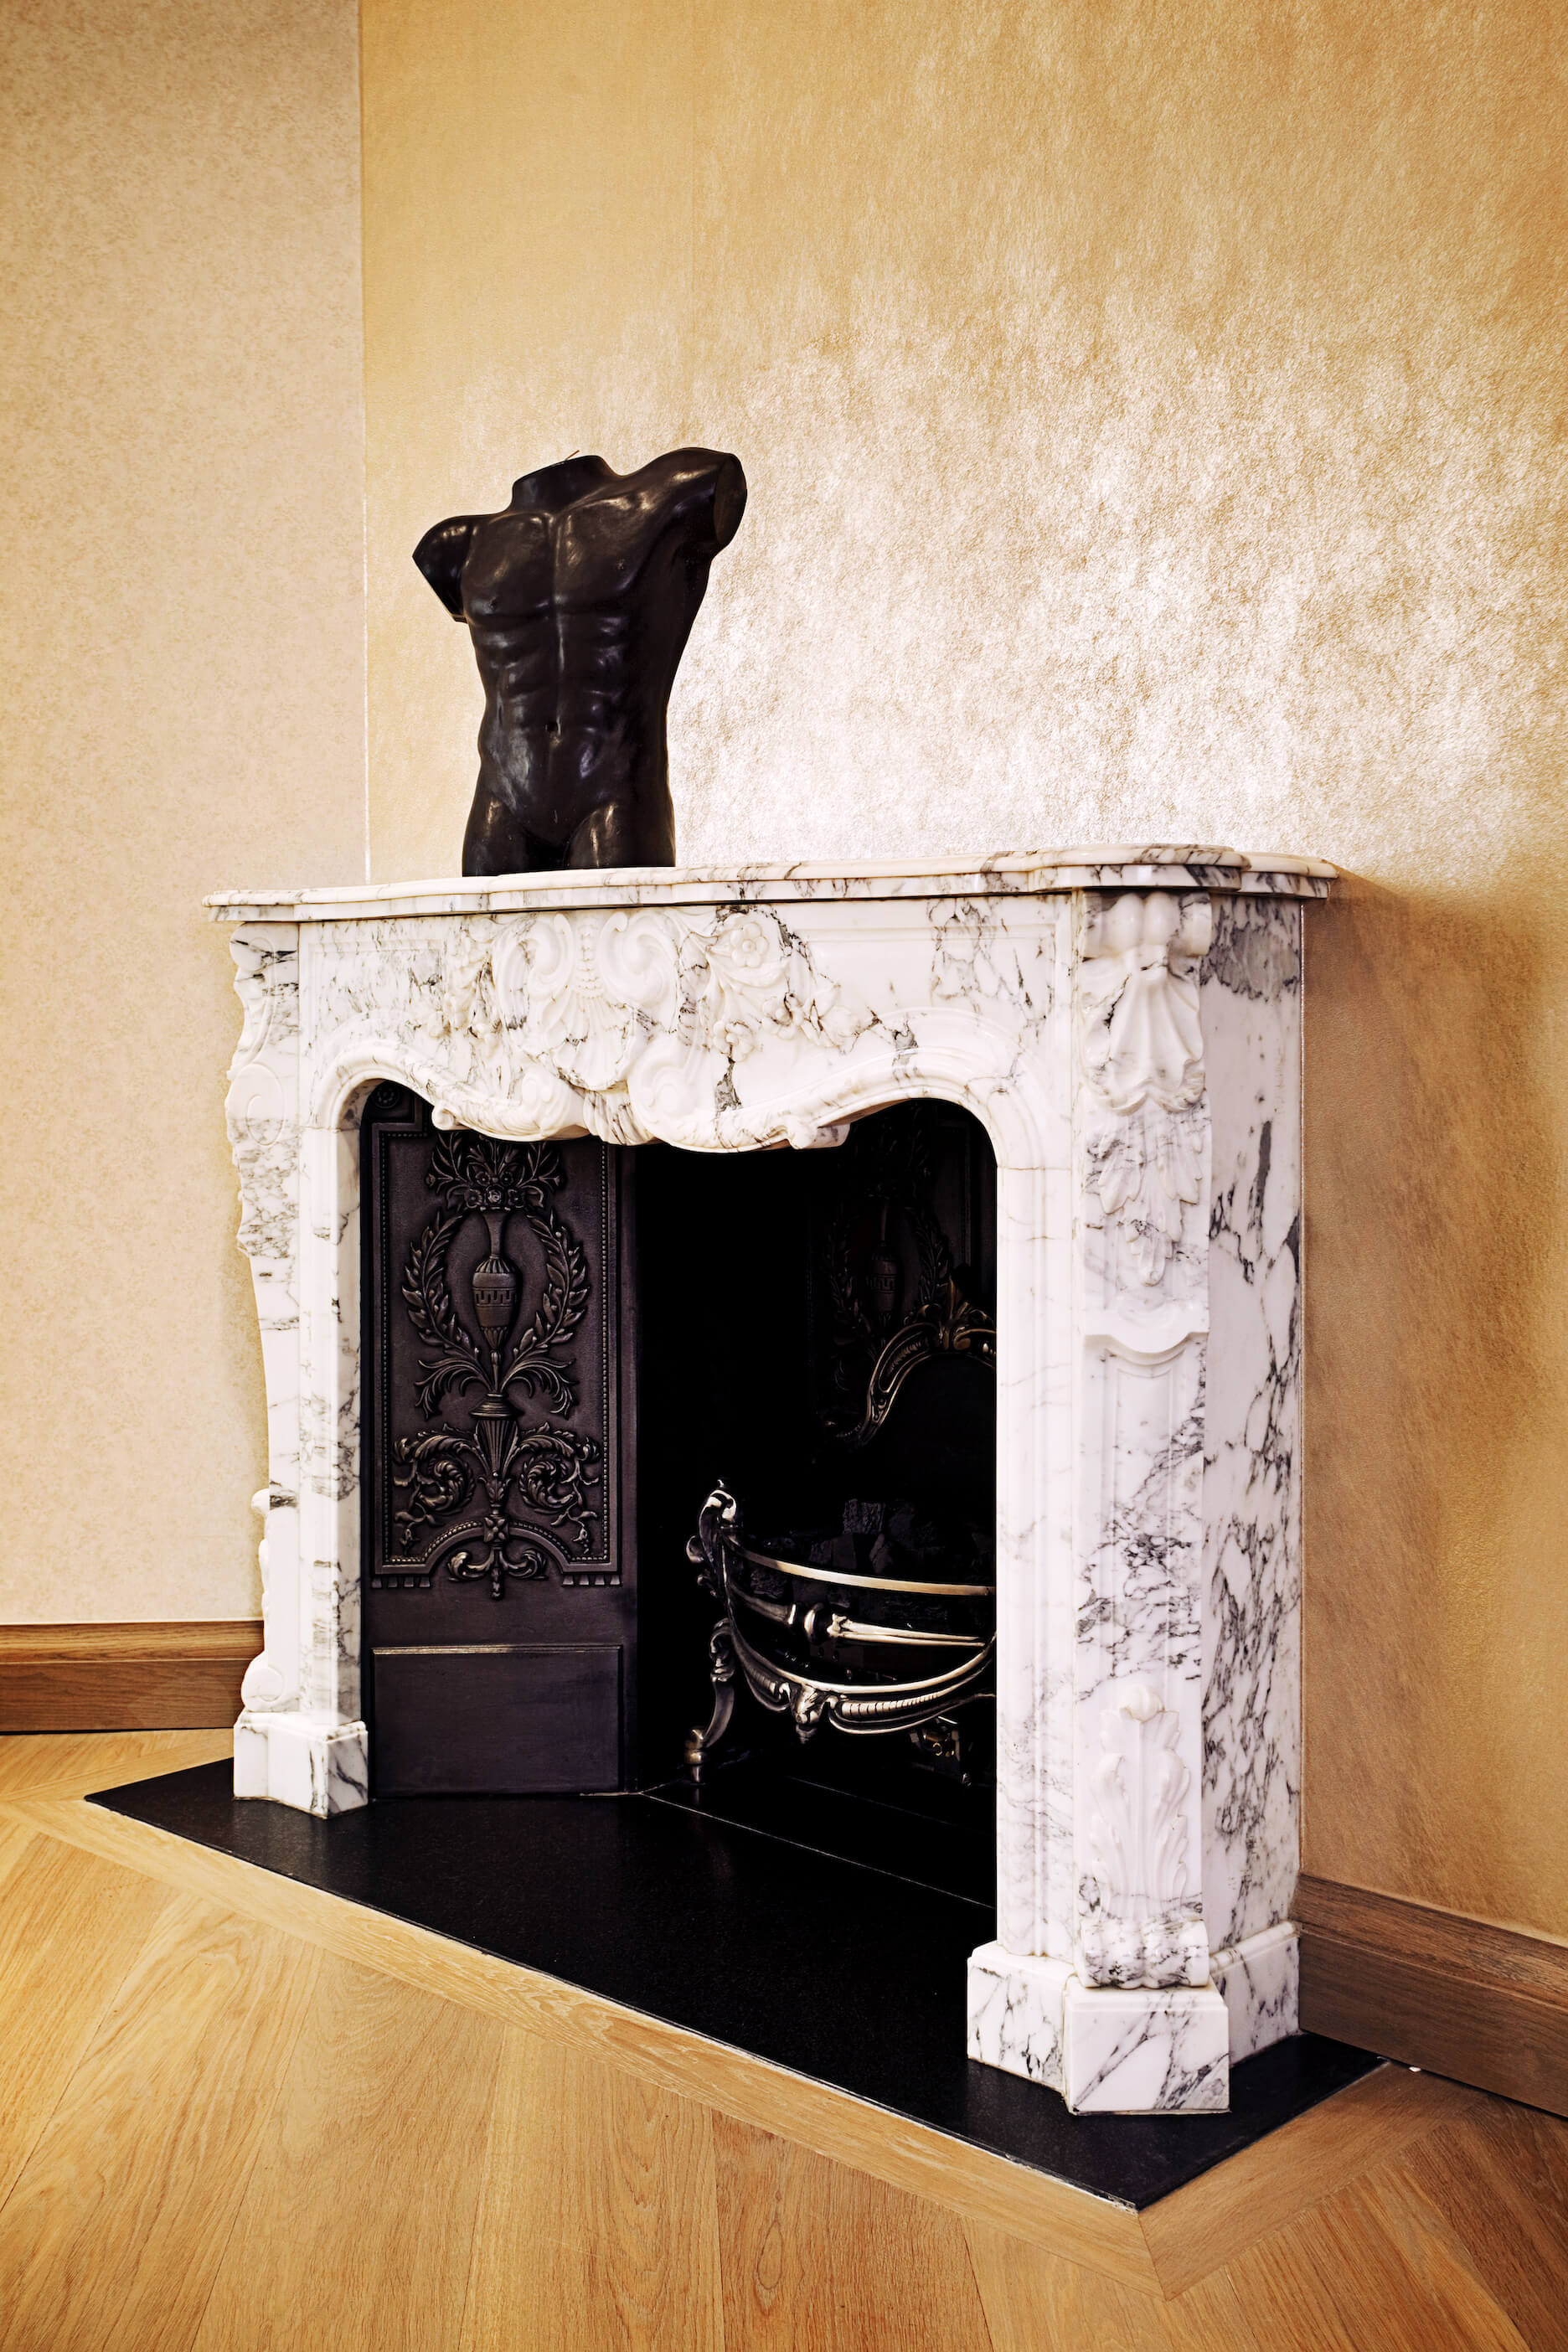 Standing within the dining room, this marble wrapped fireplace stands out with its bright, contrasting tones and rich, carved details.